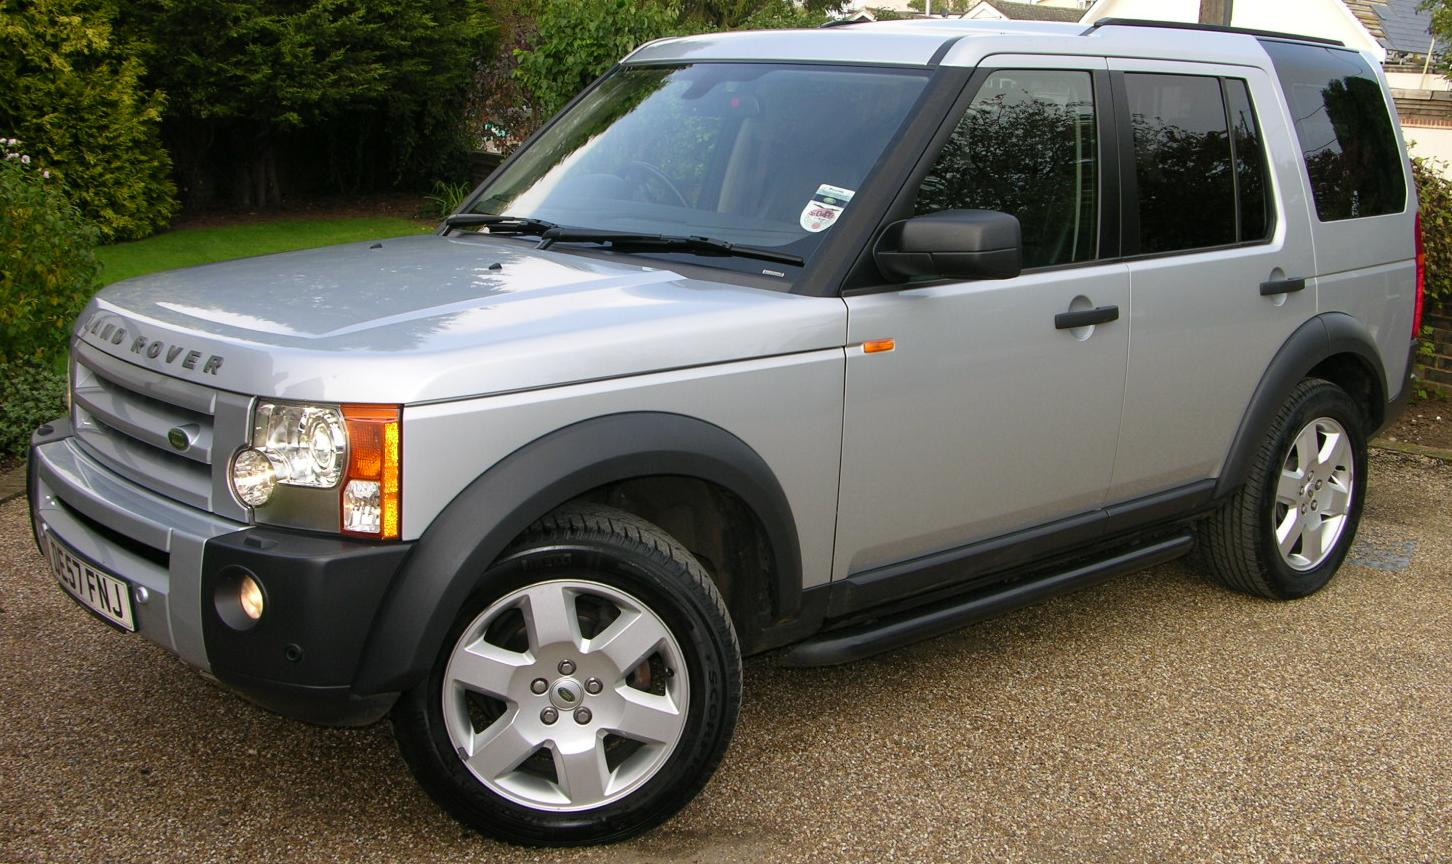 file 2007 land rover discovery 3 tdv6 hse flickr the. Black Bedroom Furniture Sets. Home Design Ideas